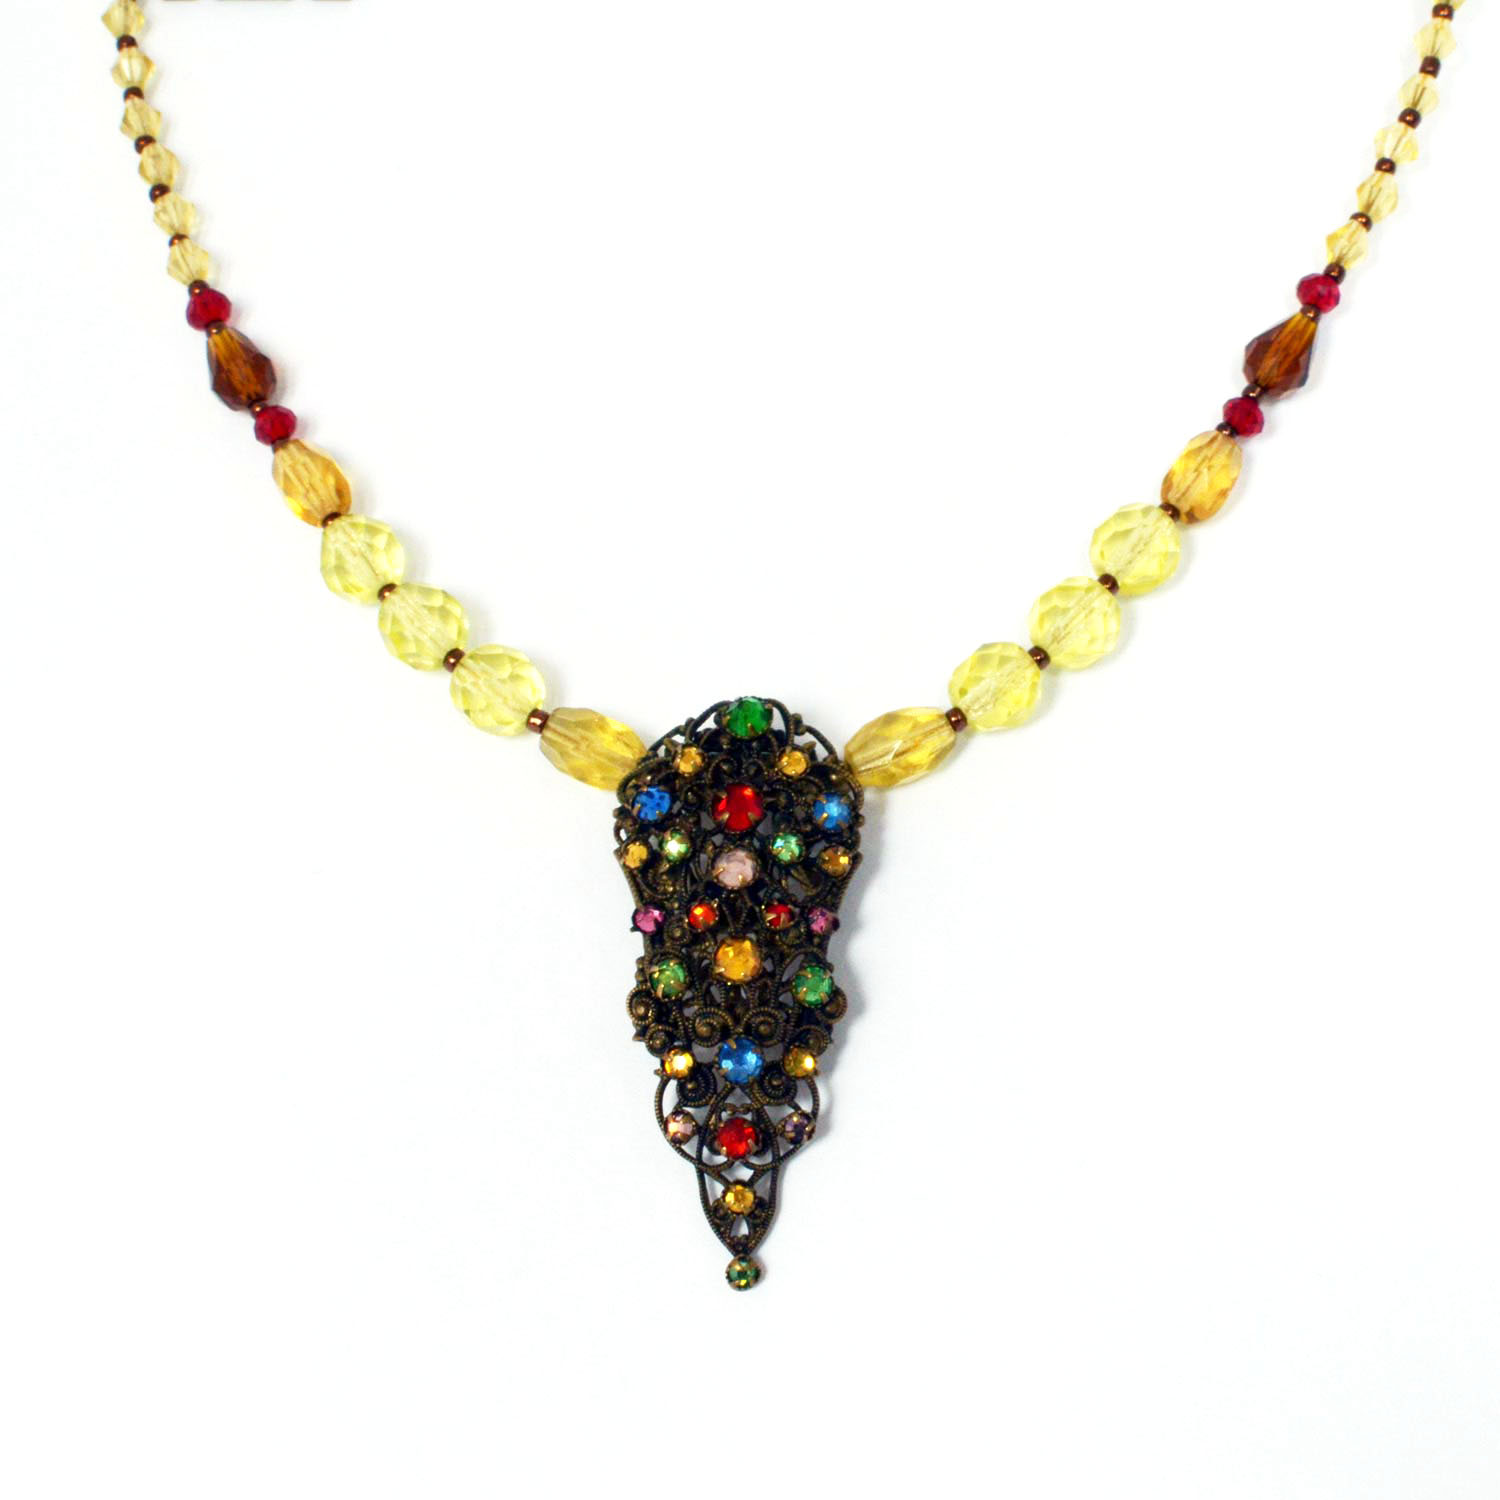 re-imagined vintage necklace